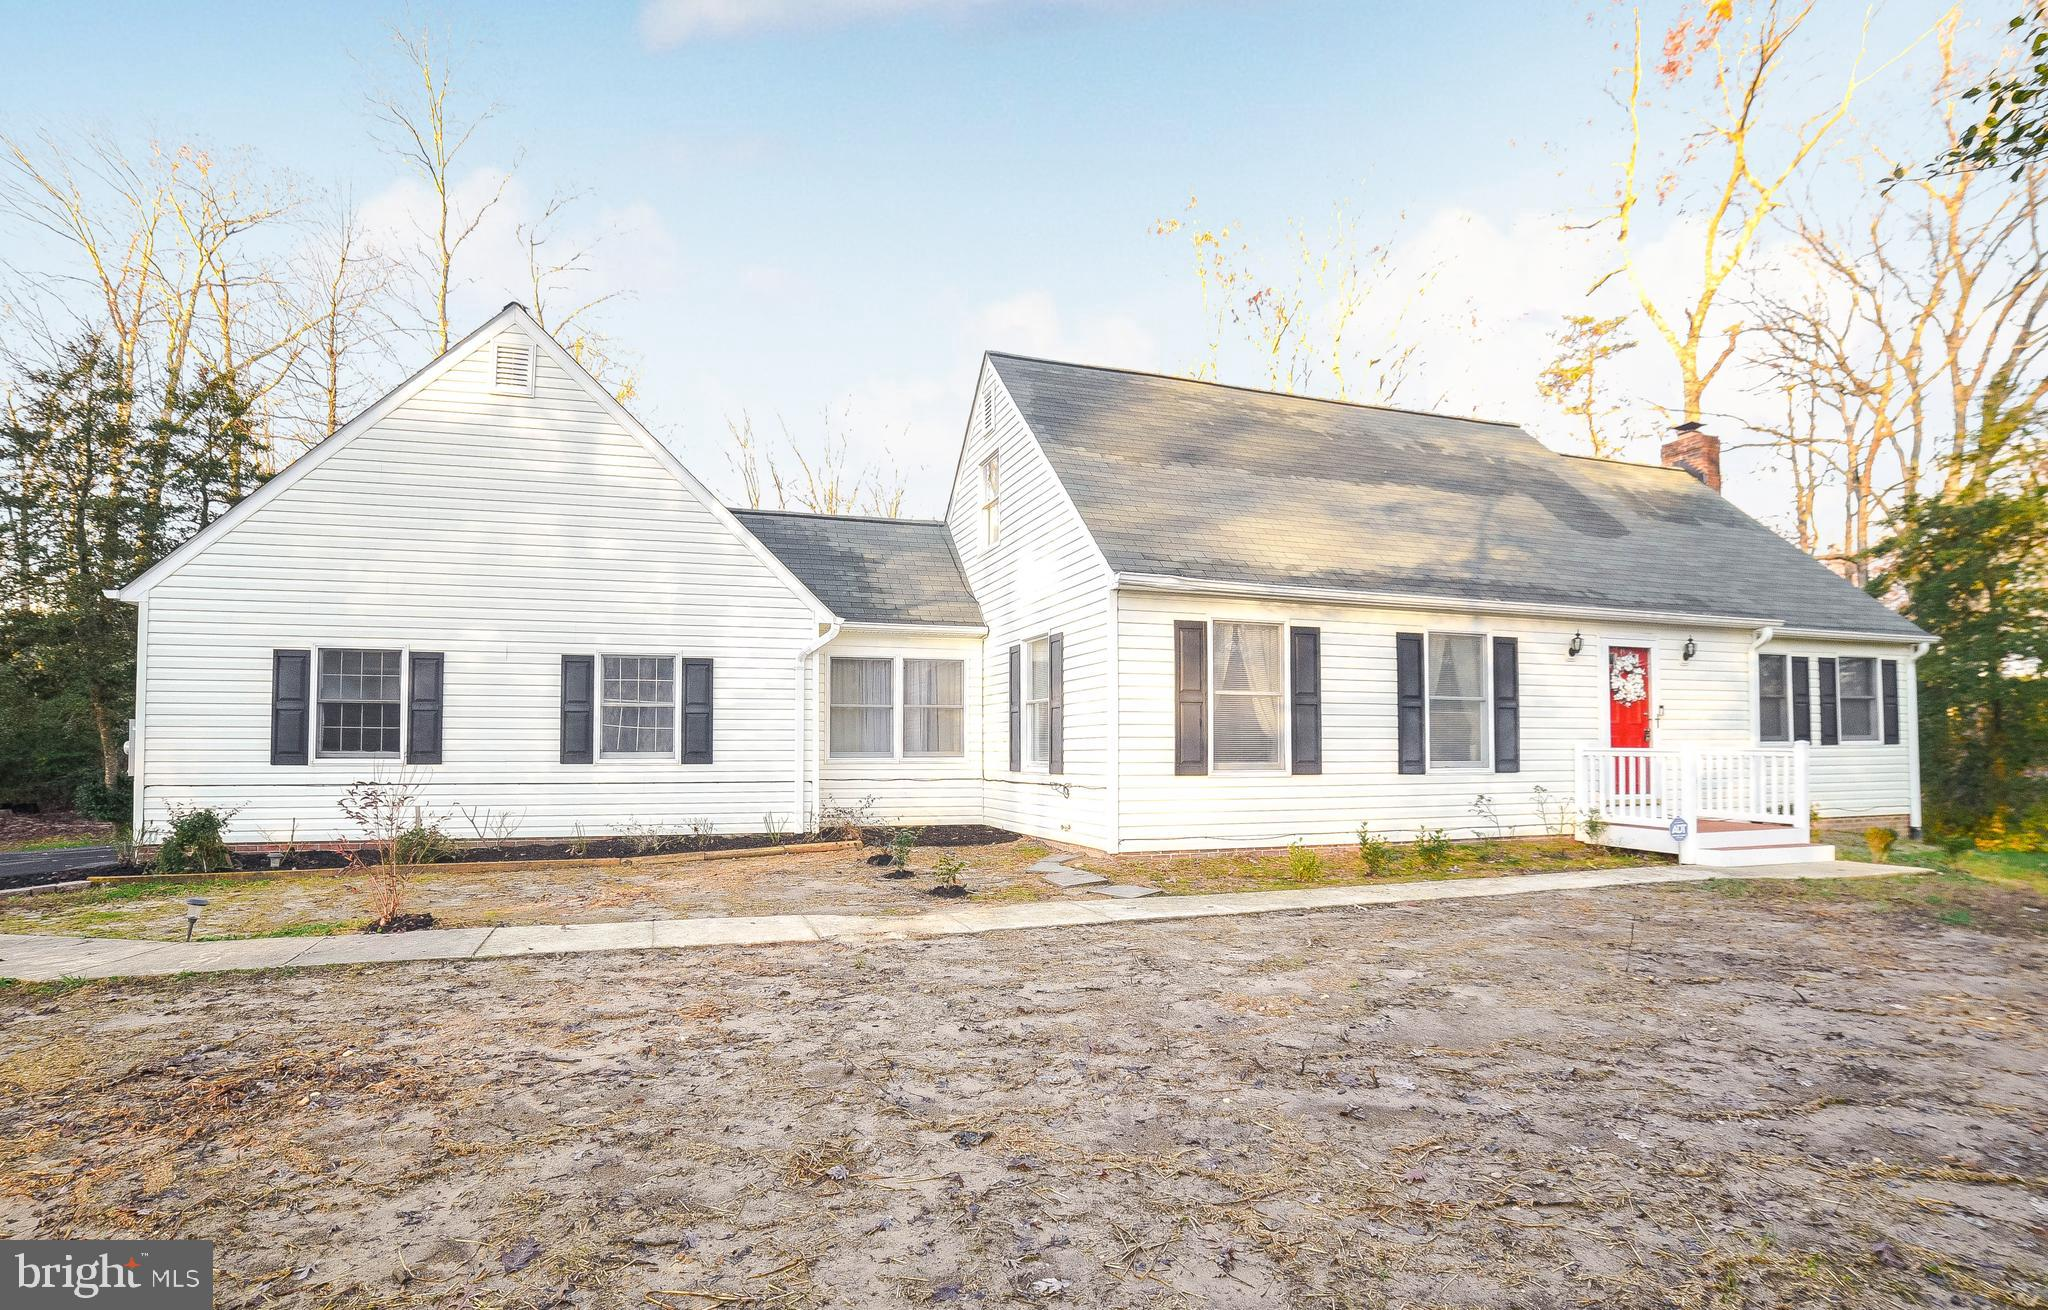 Beautiful 4 bed 3 full bath Cape Cod home in the Wildewood community. Enjoy this large corner lot co